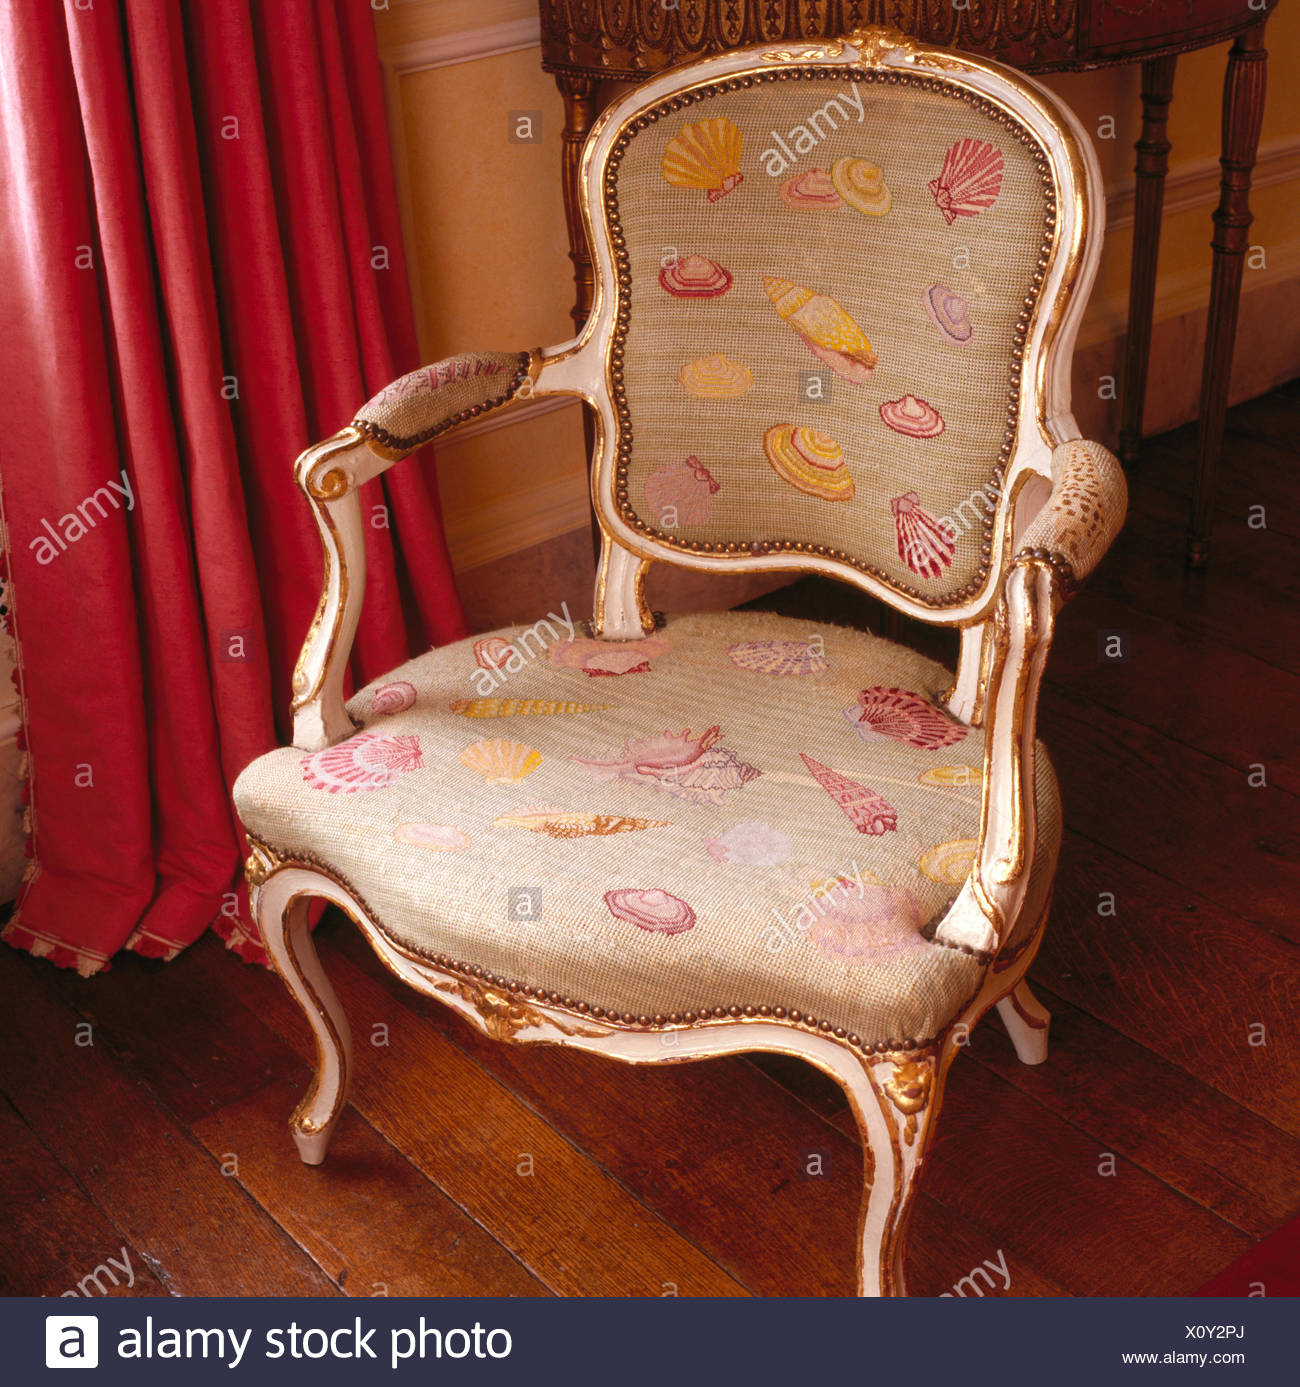 French style chair upholstered in seashell patterned fabric designed by Henrietta Spencer-Churchill - Stock Image